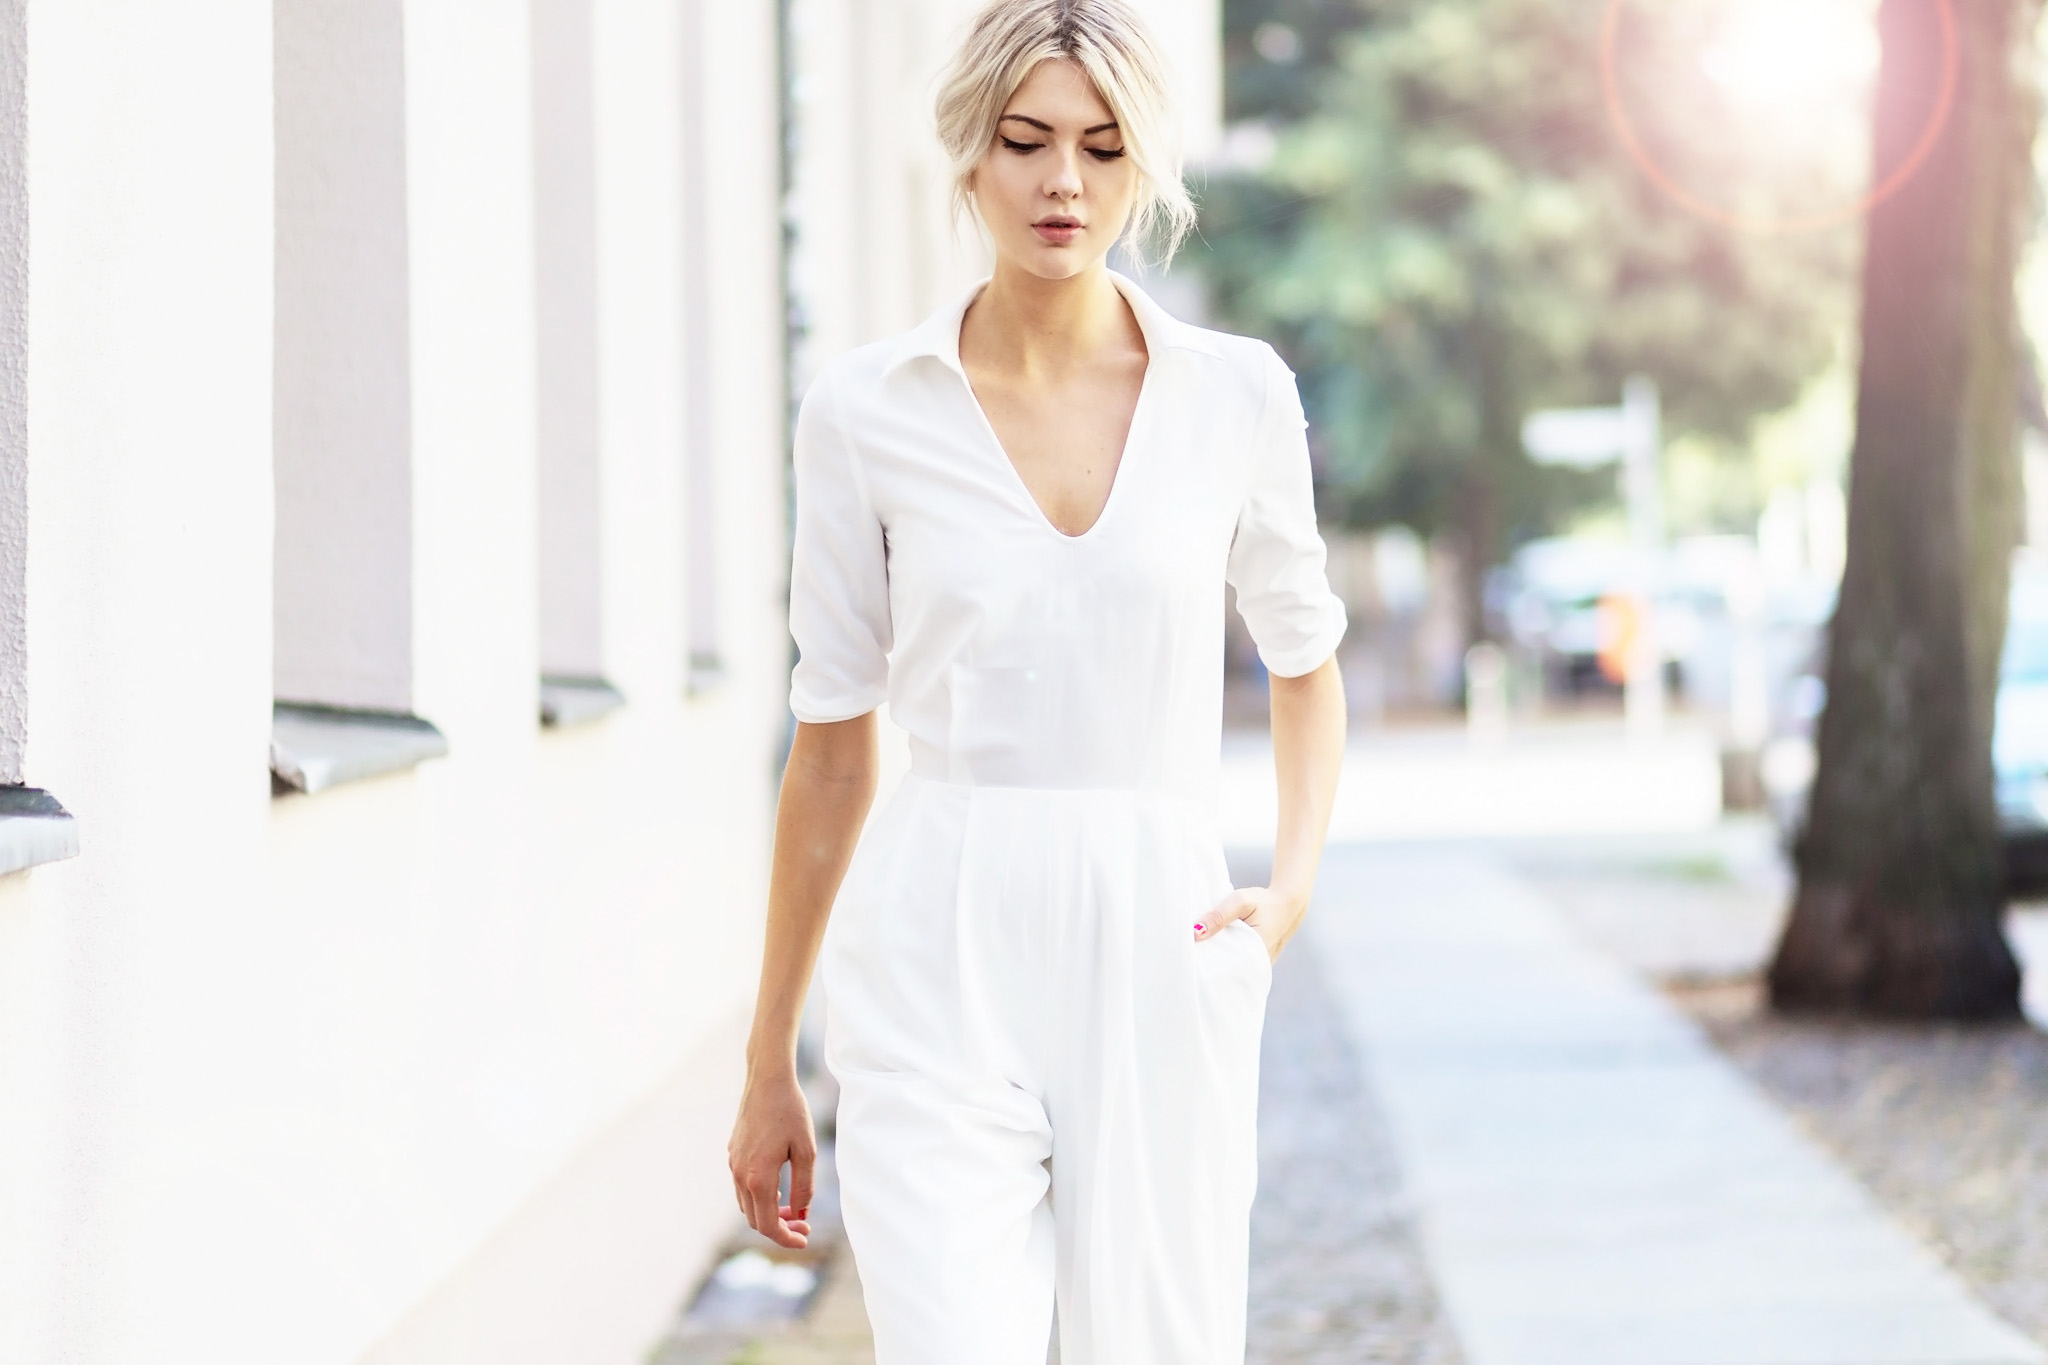 BERLIN, GERMANY - JULY 26:  Ebba Zingmark wearing a white jumpsuit from The 5TH on July 26, 2016 in Berlin, Germany. (Photo by Christian Vierig/Getty Images) *** Local Caption *** Ebba Zingmark